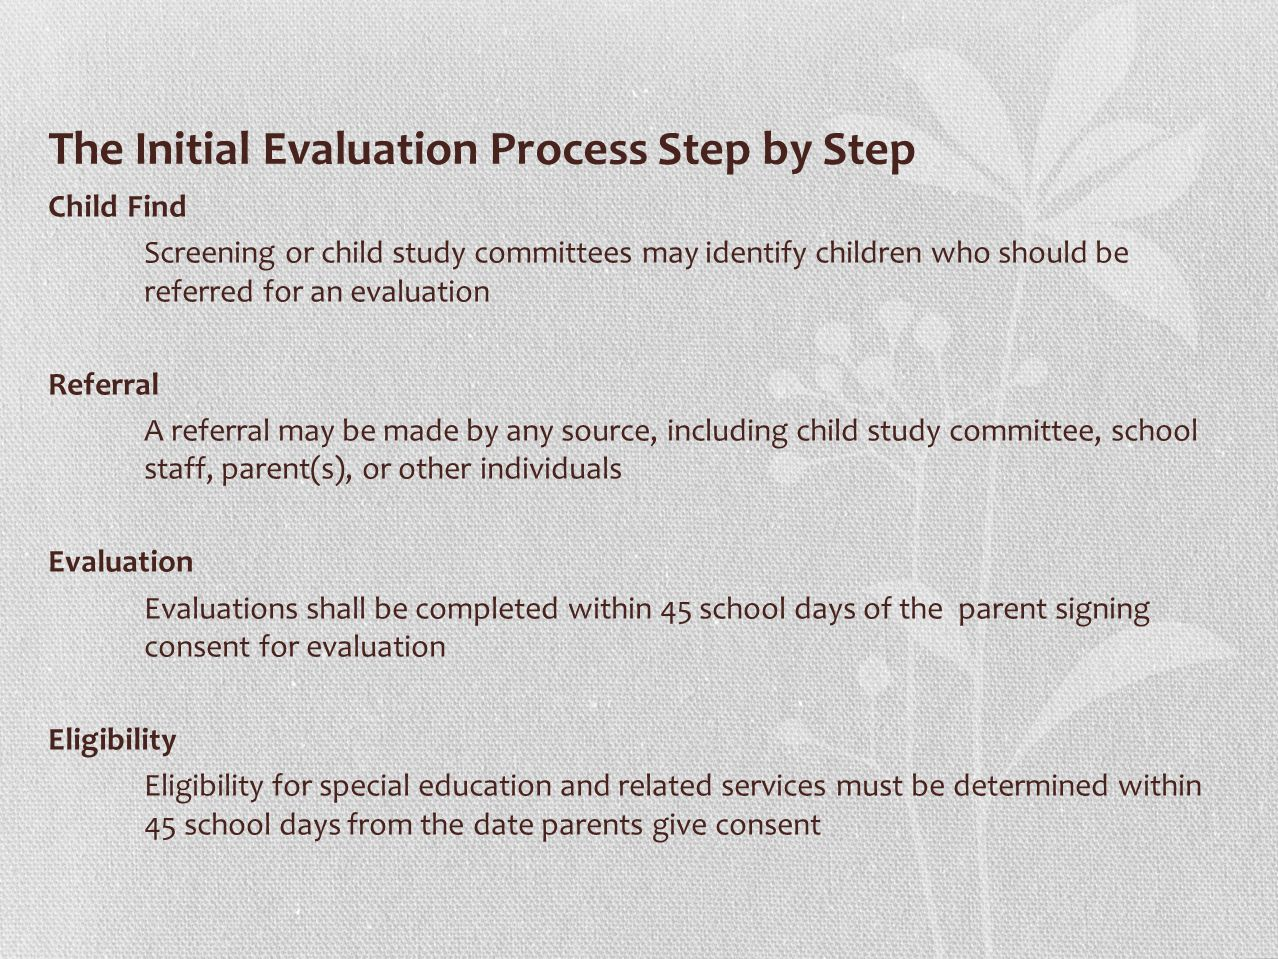 The Initial Evaluation Process Step by Step Child Find Screening or child study committees may identify children who should be referred for an evaluation Referral A referral may be made by any source, including child study committee, school staff, parent(s), or other individuals Evaluation Evaluations shall be completed within 45 school days of the parent signing consent for evaluation Eligibility Eligibility for special education and related services must be determined within 45 school days from the date parents give consent